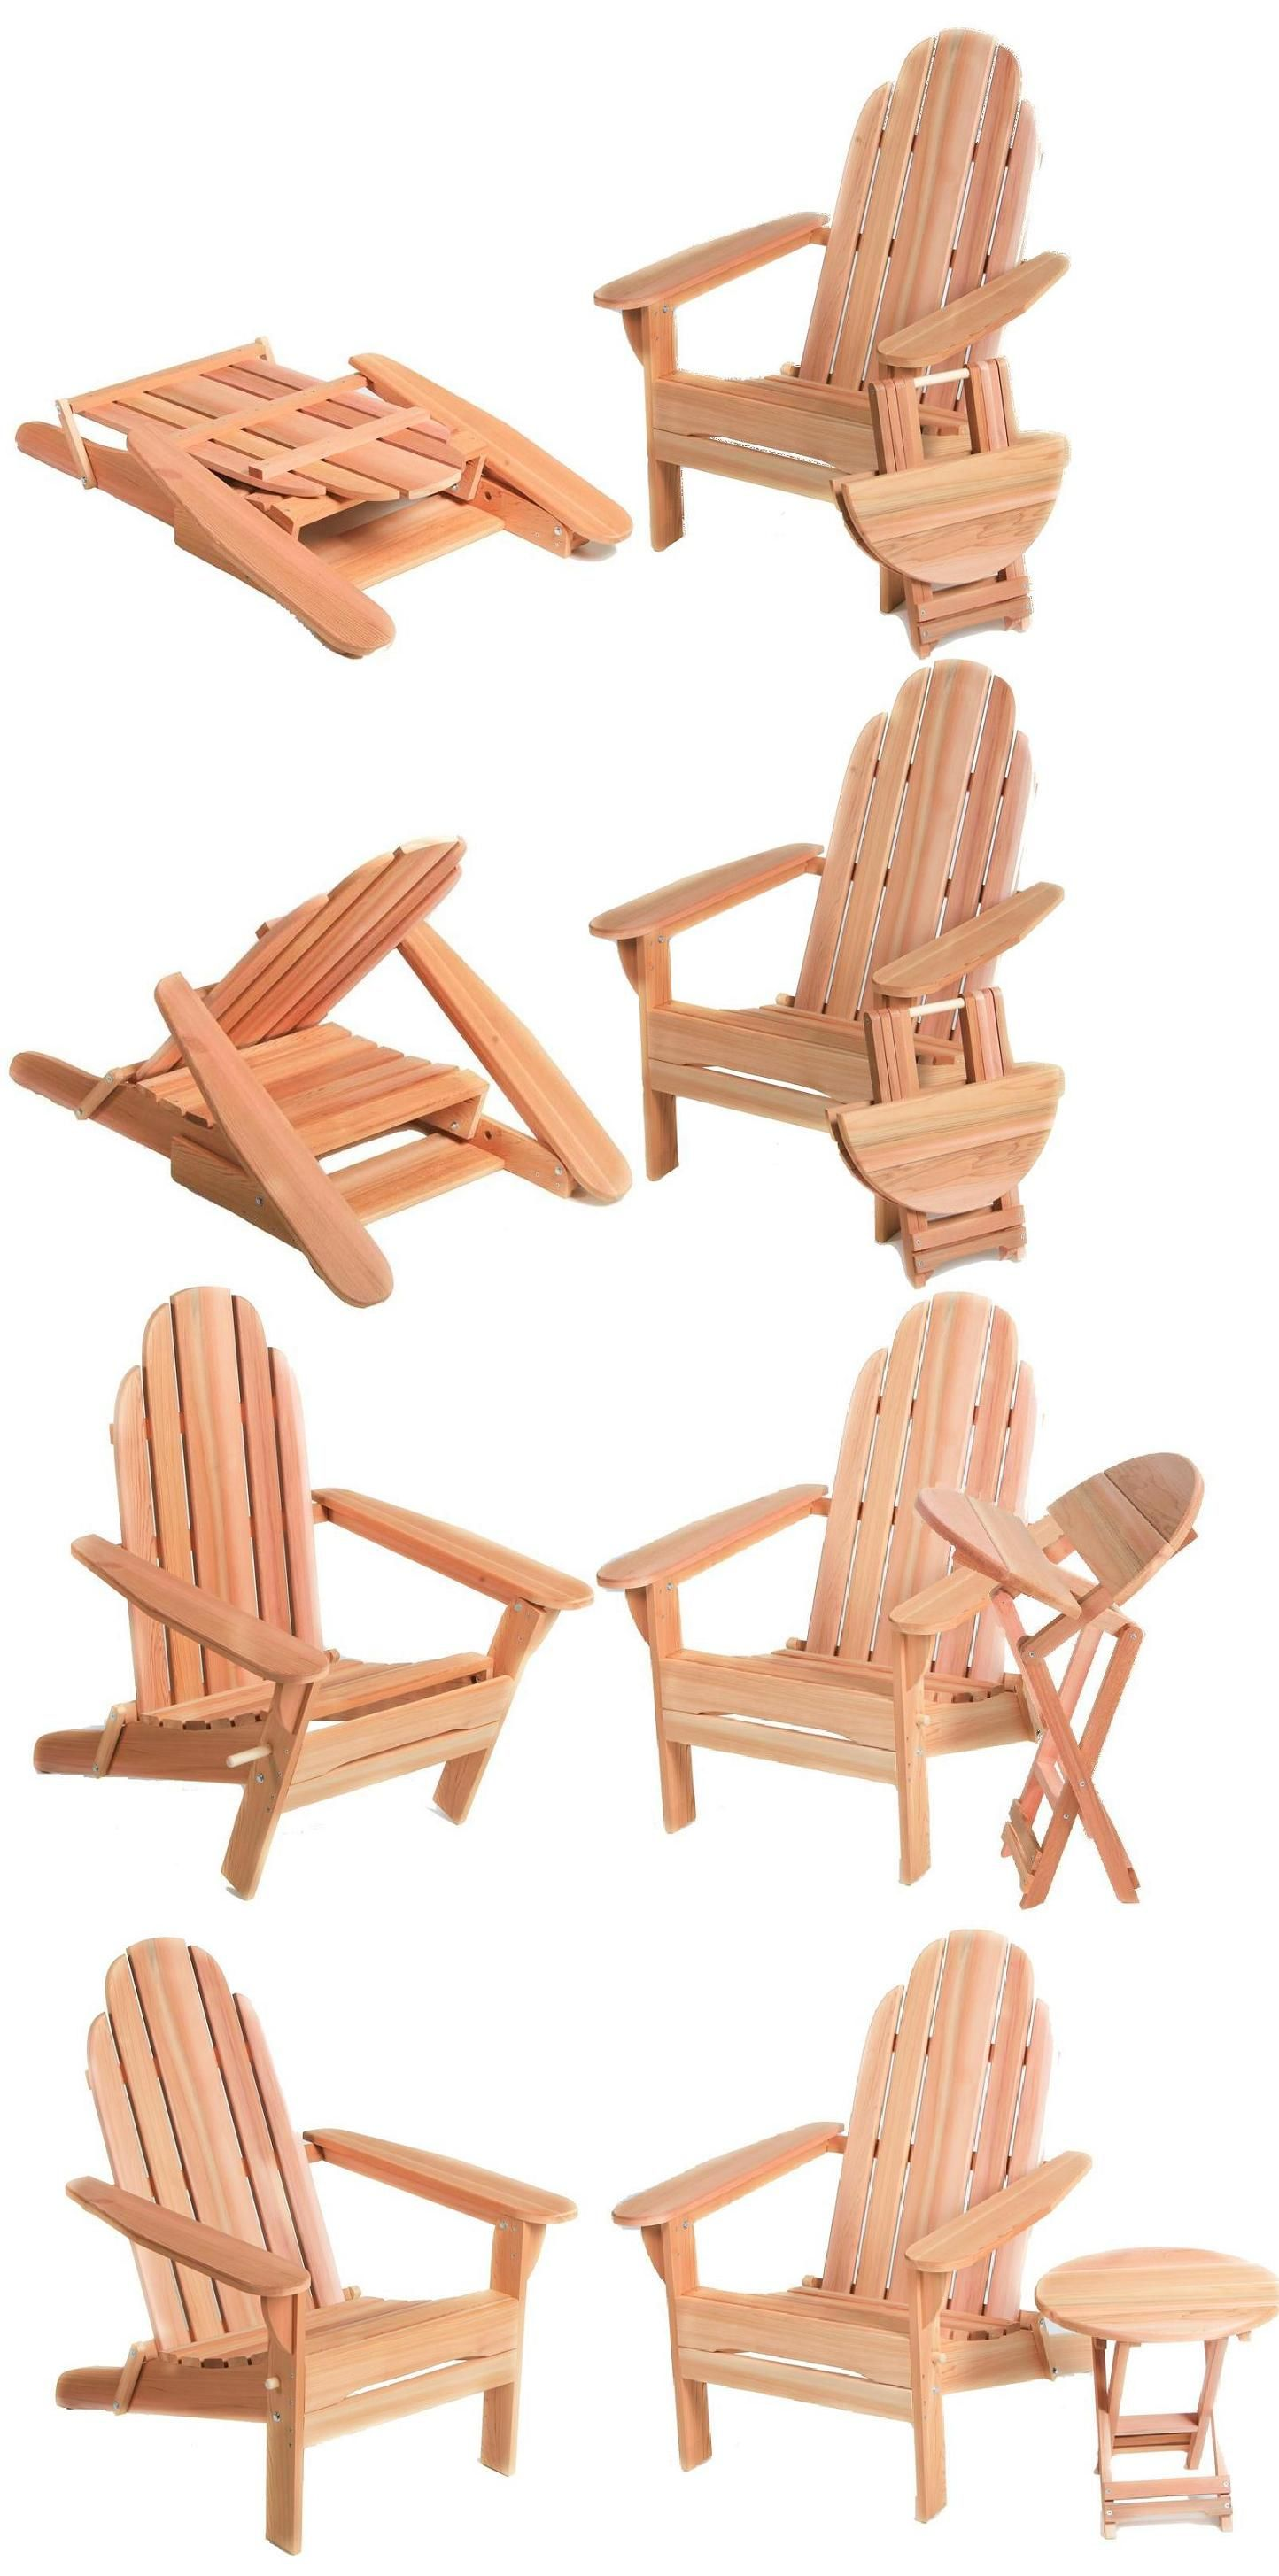 folding adirondack chairs table wood working ideas. Black Bedroom Furniture Sets. Home Design Ideas